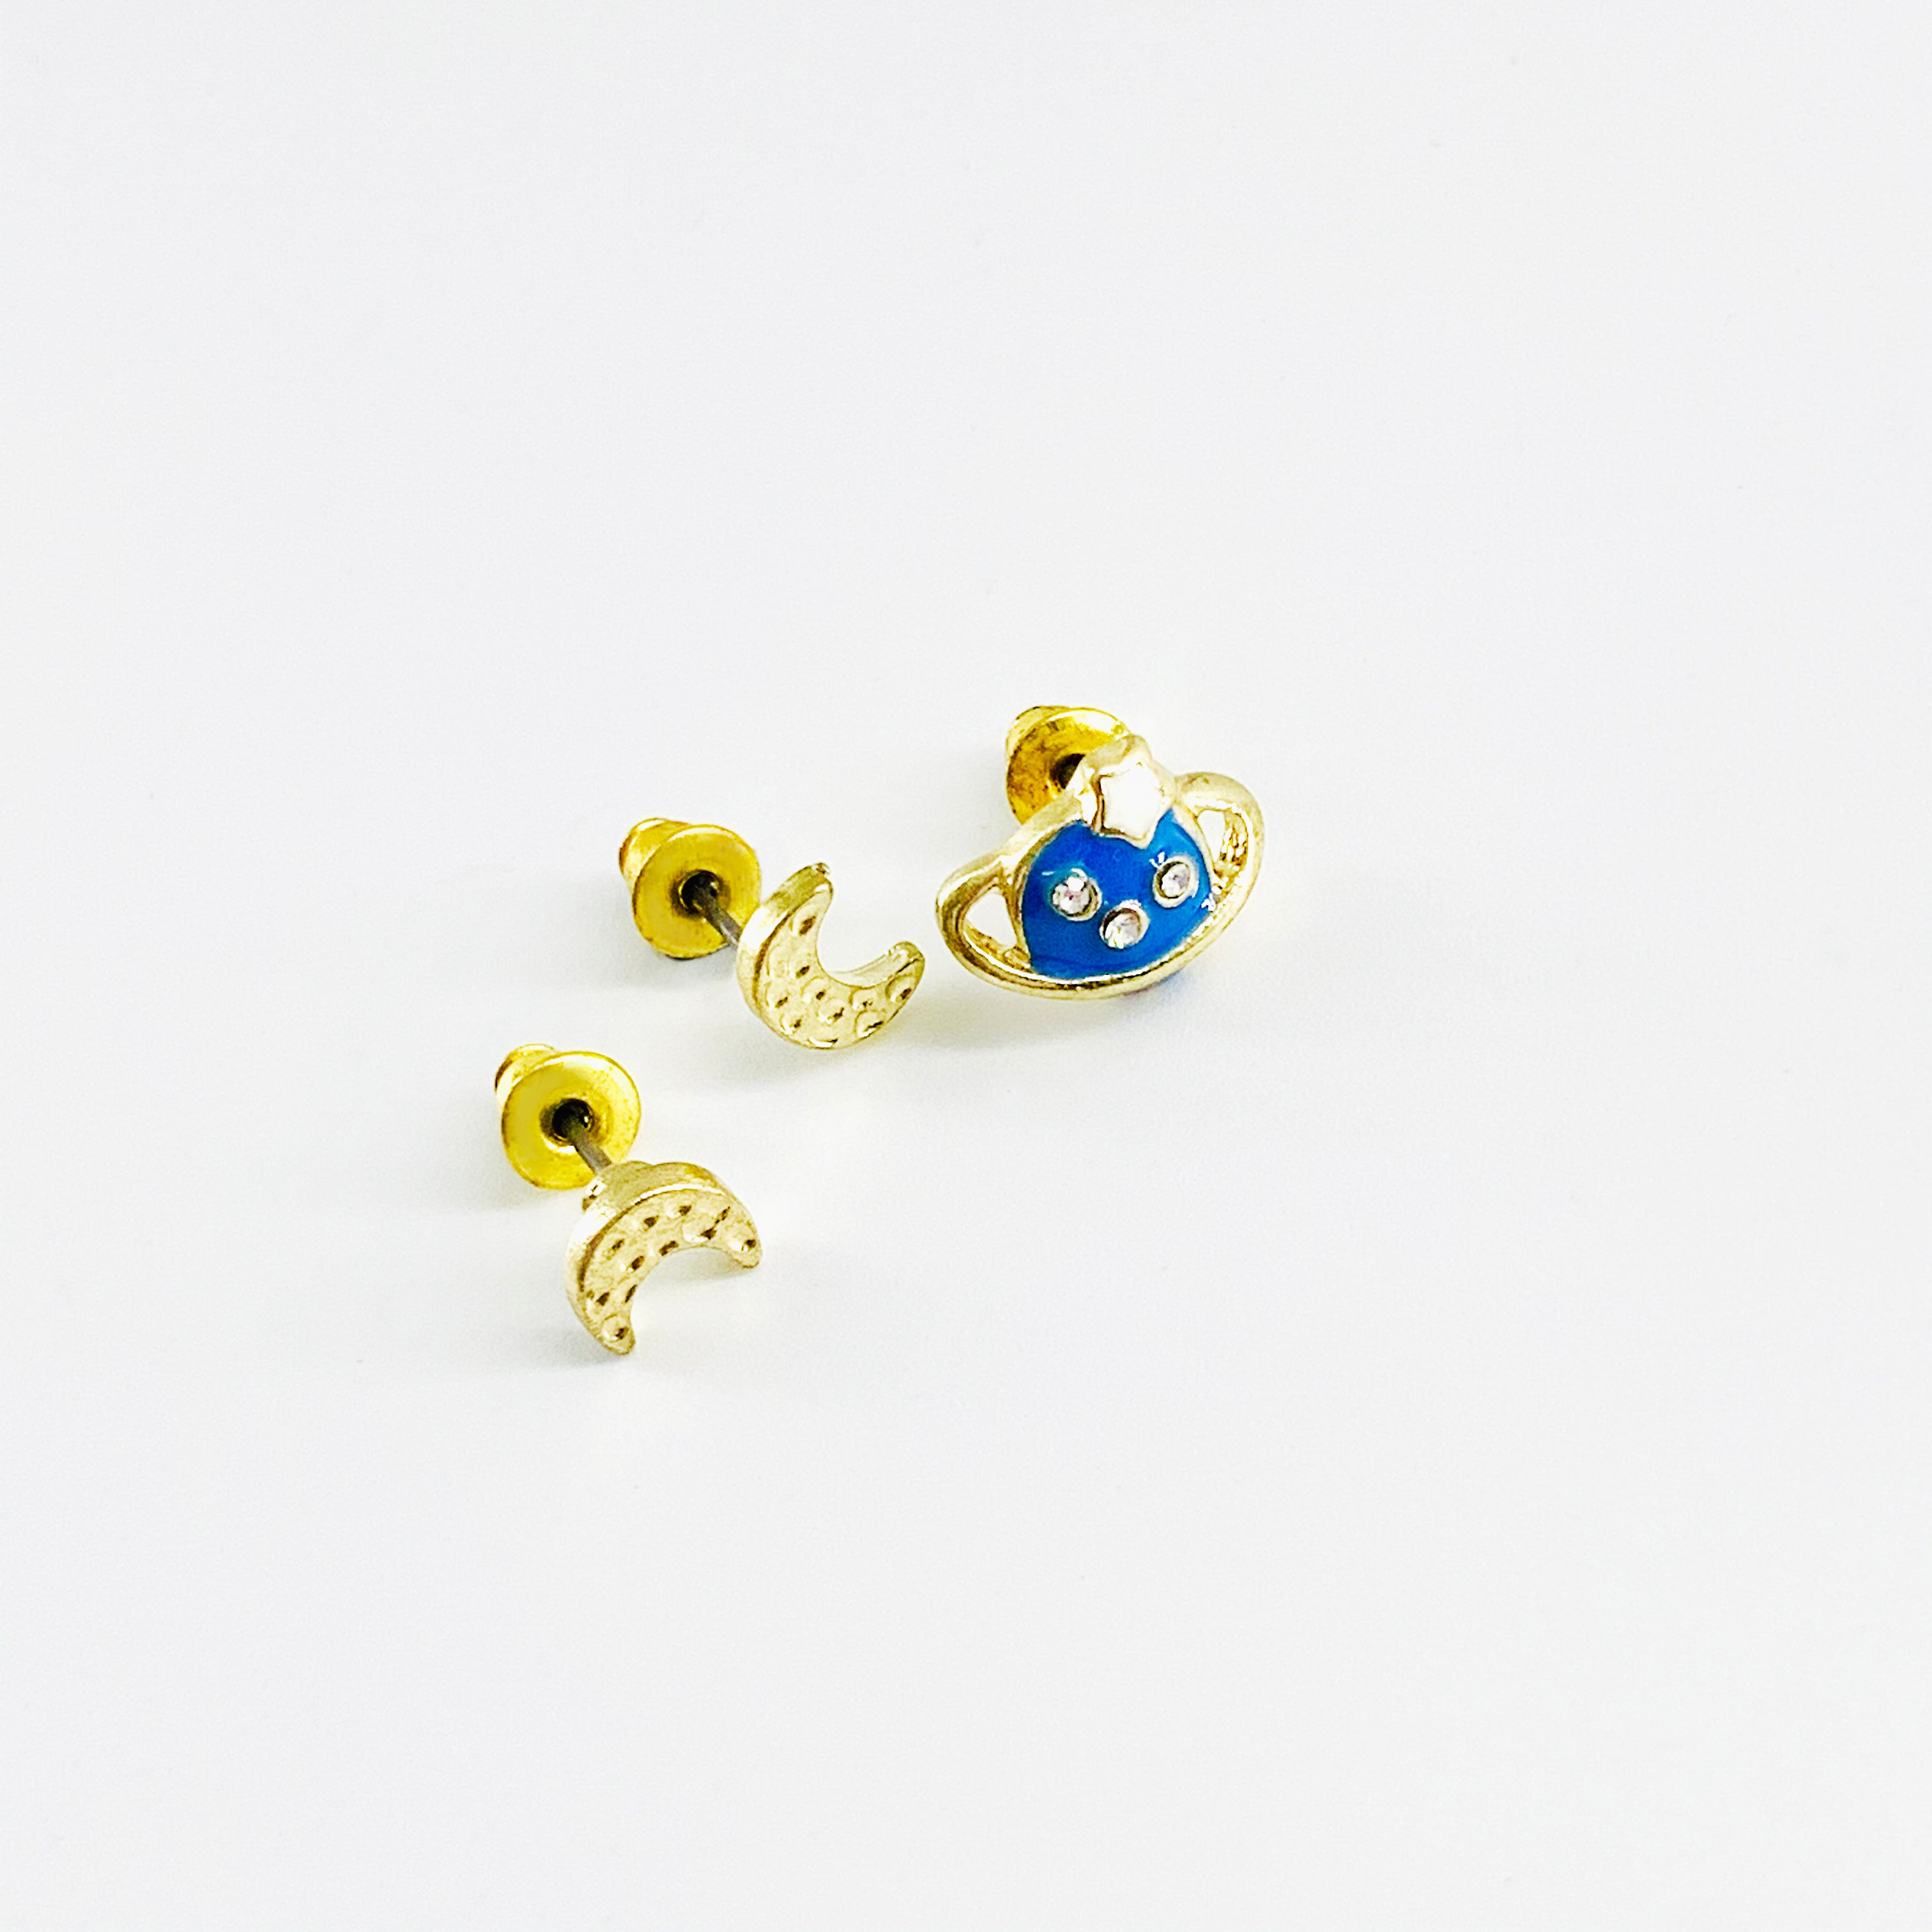 Saturn and crescent moon ear studs